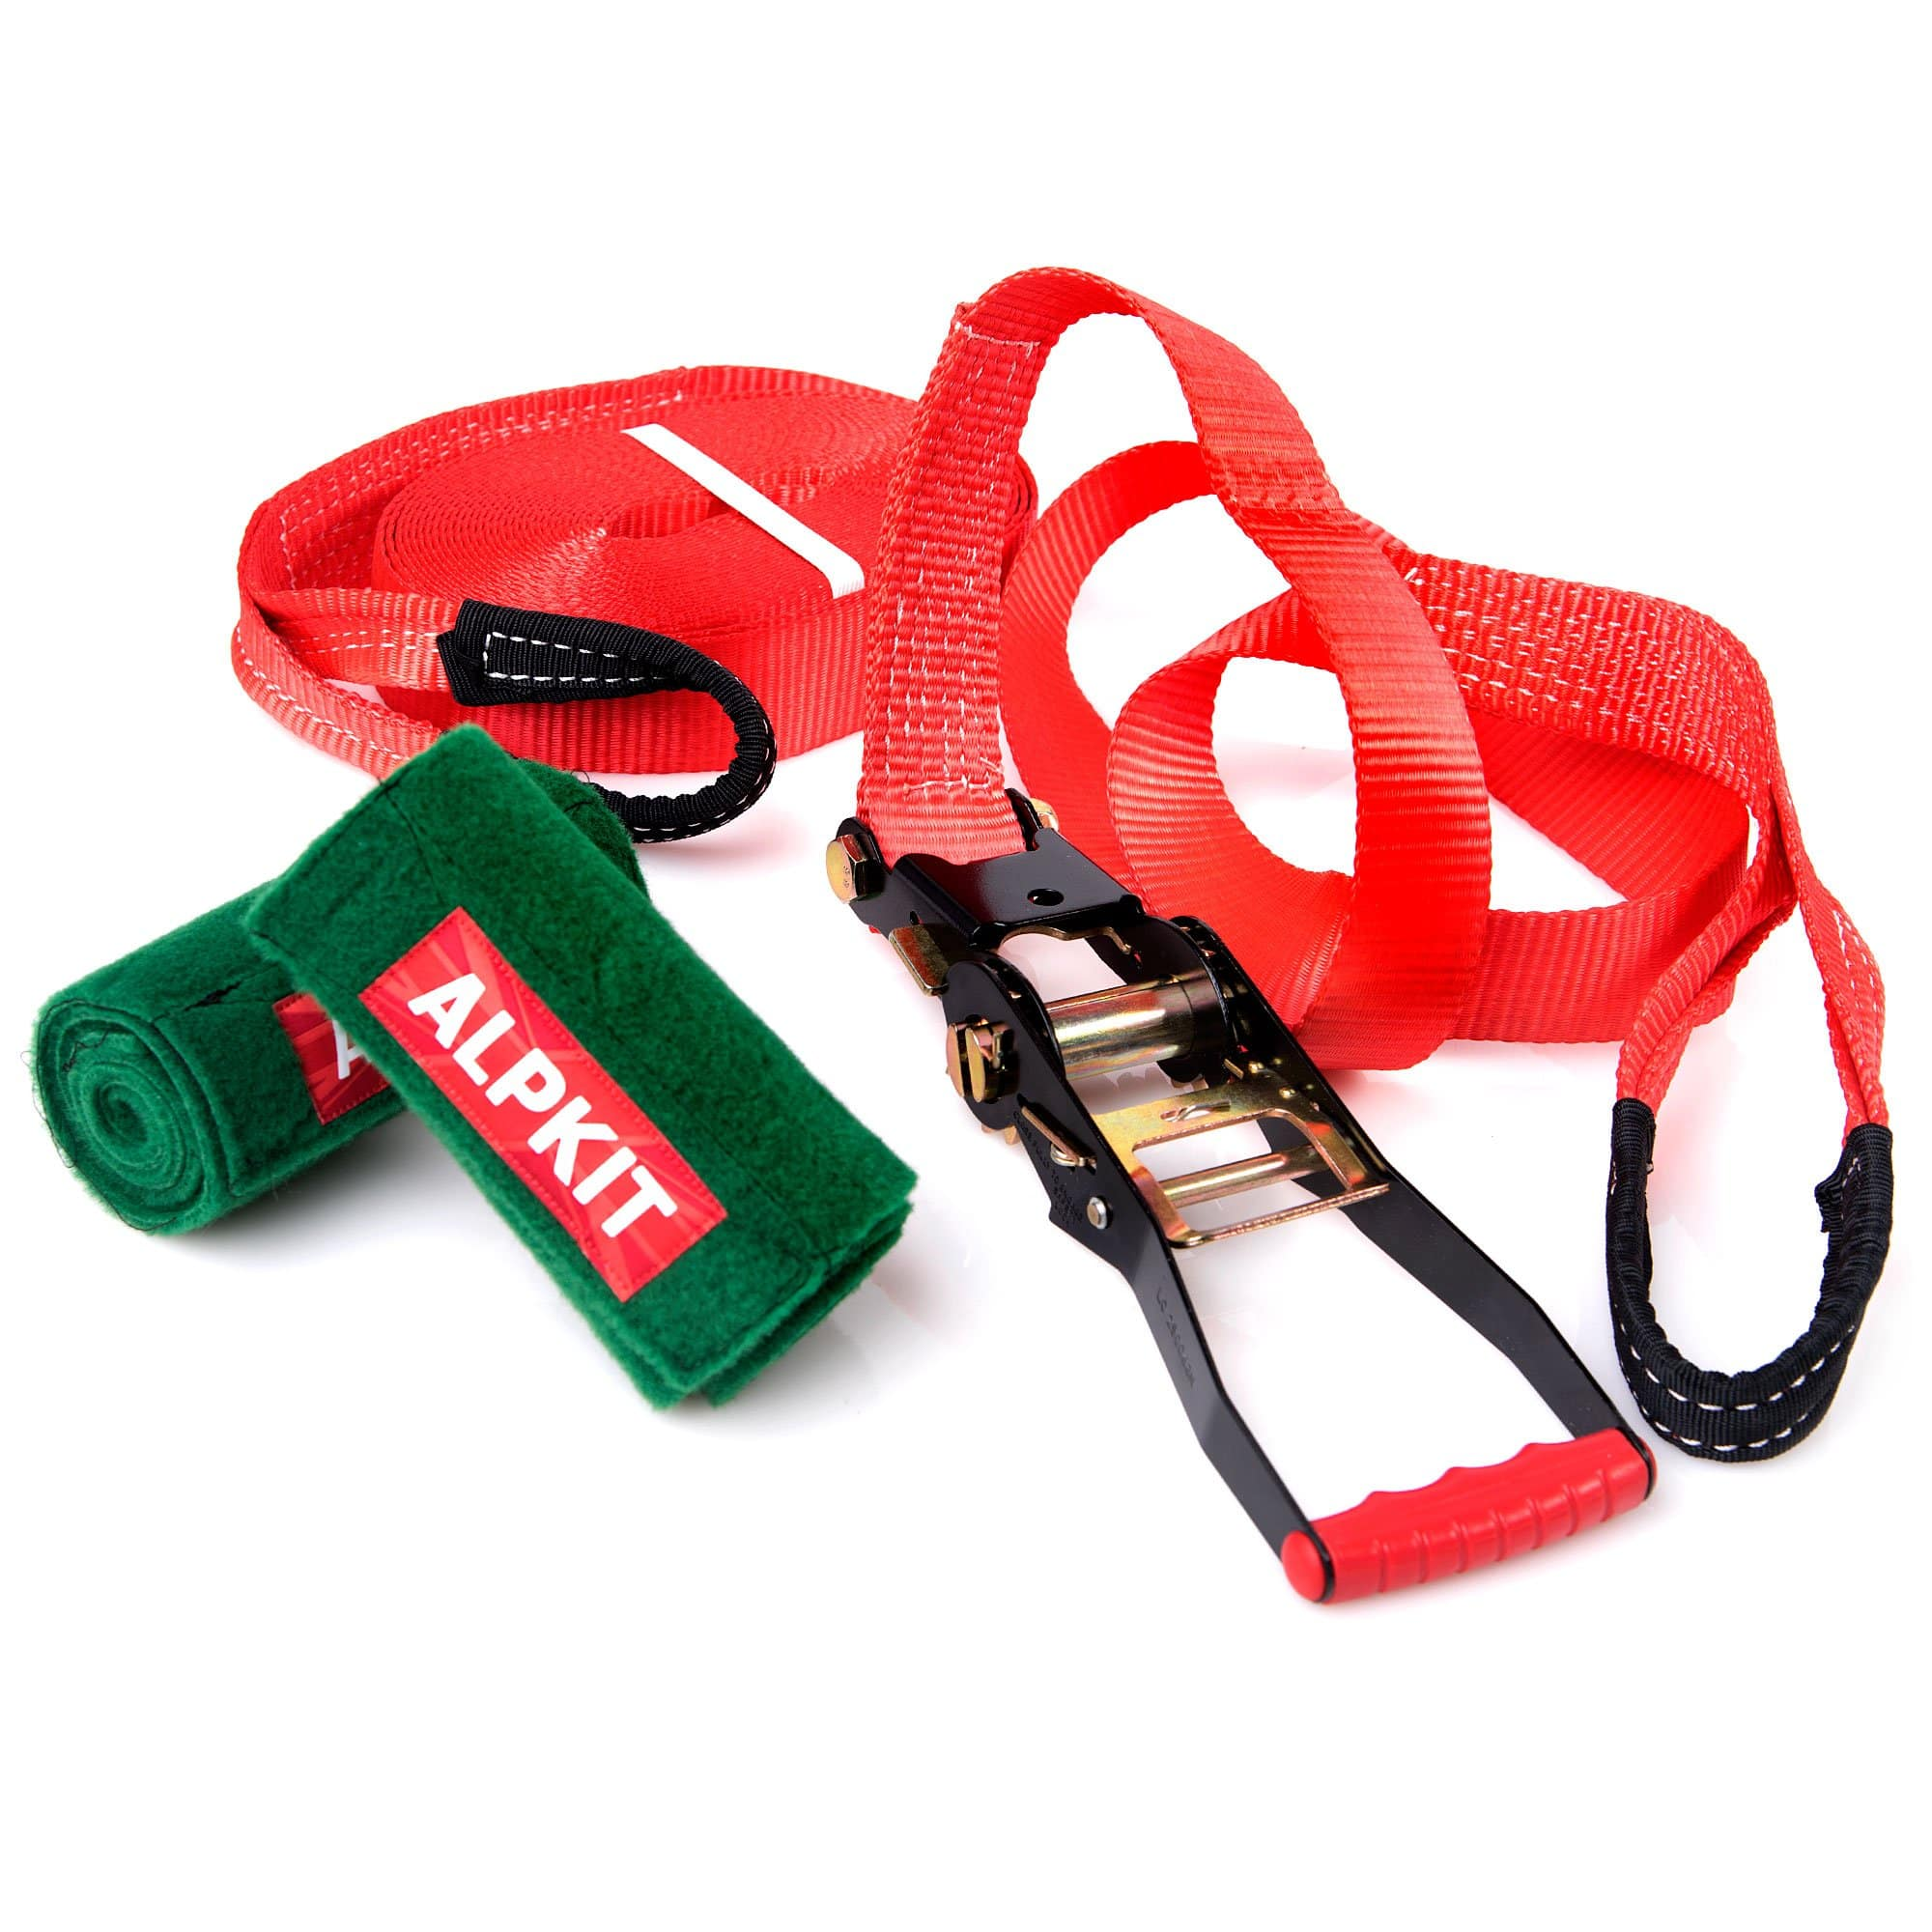 ACAKSLACK-RED-01-slack kit chilli